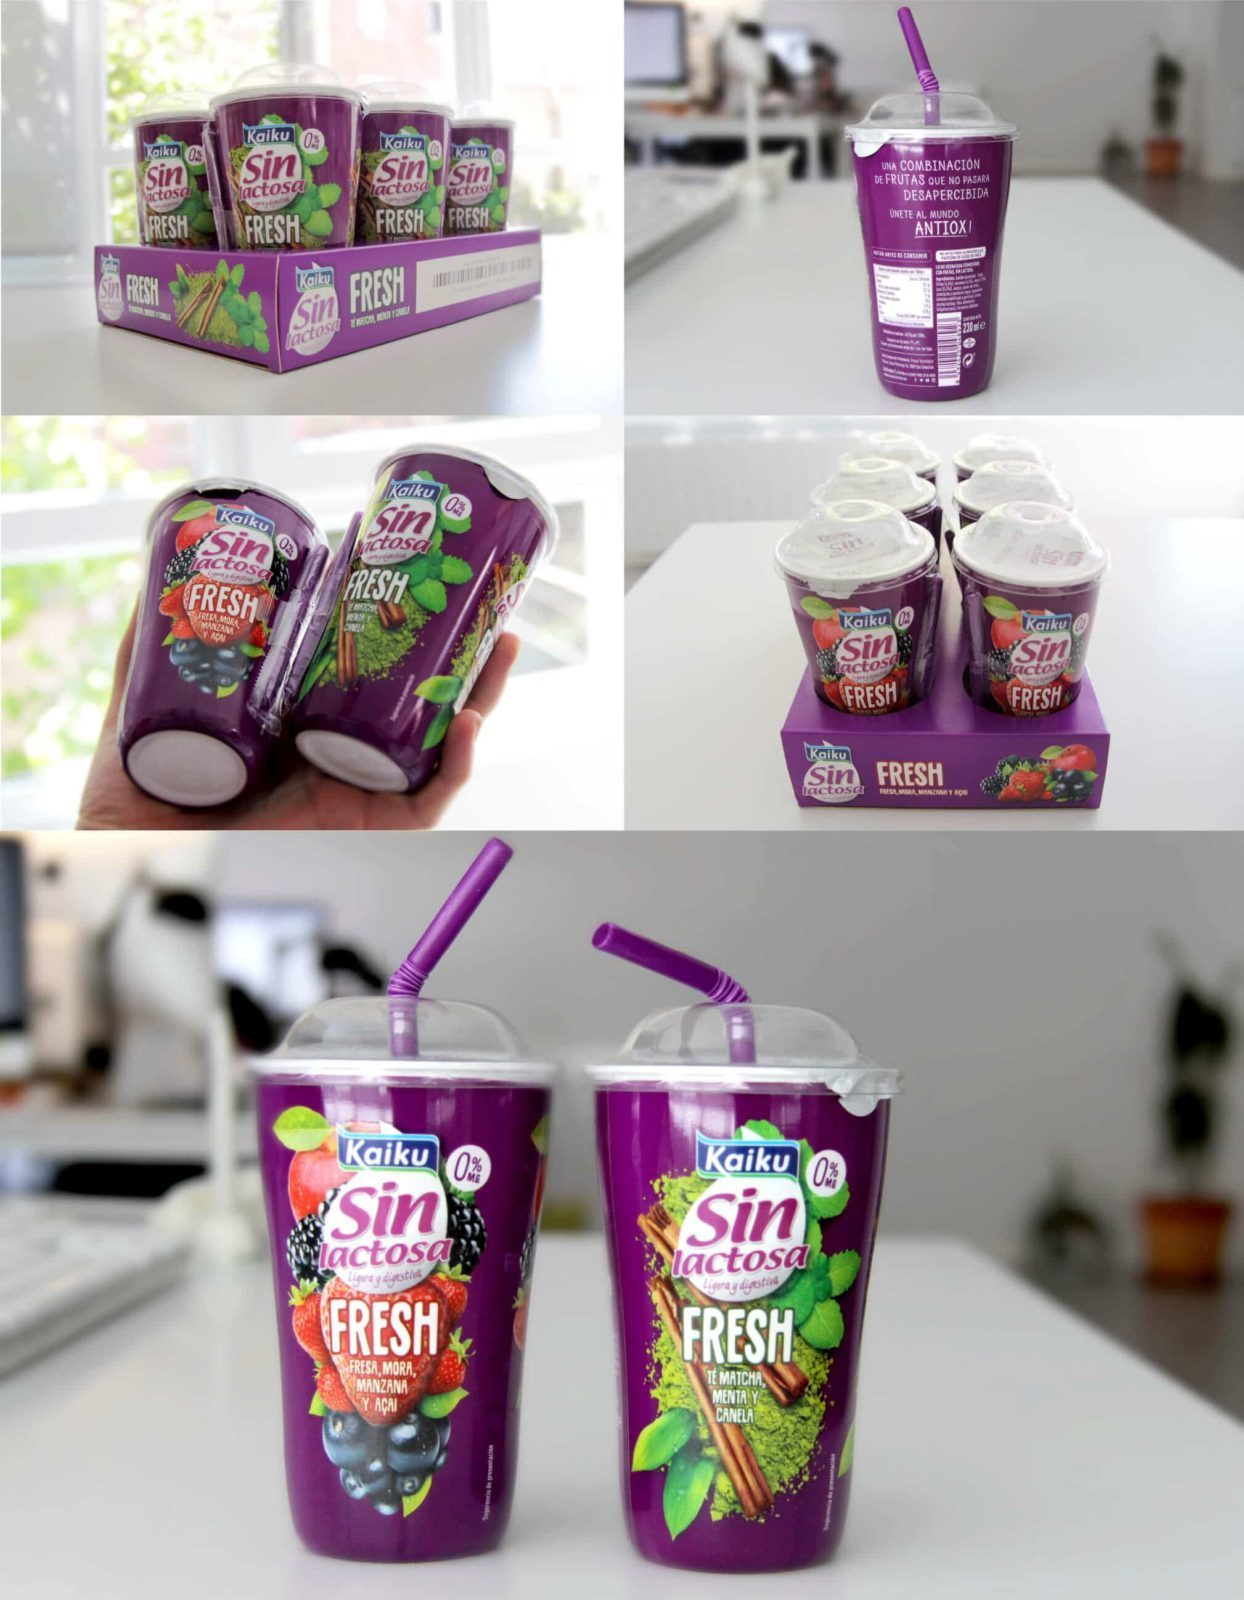 Sirope-kaiku-fresh-packaging-estudio-agencia-branding